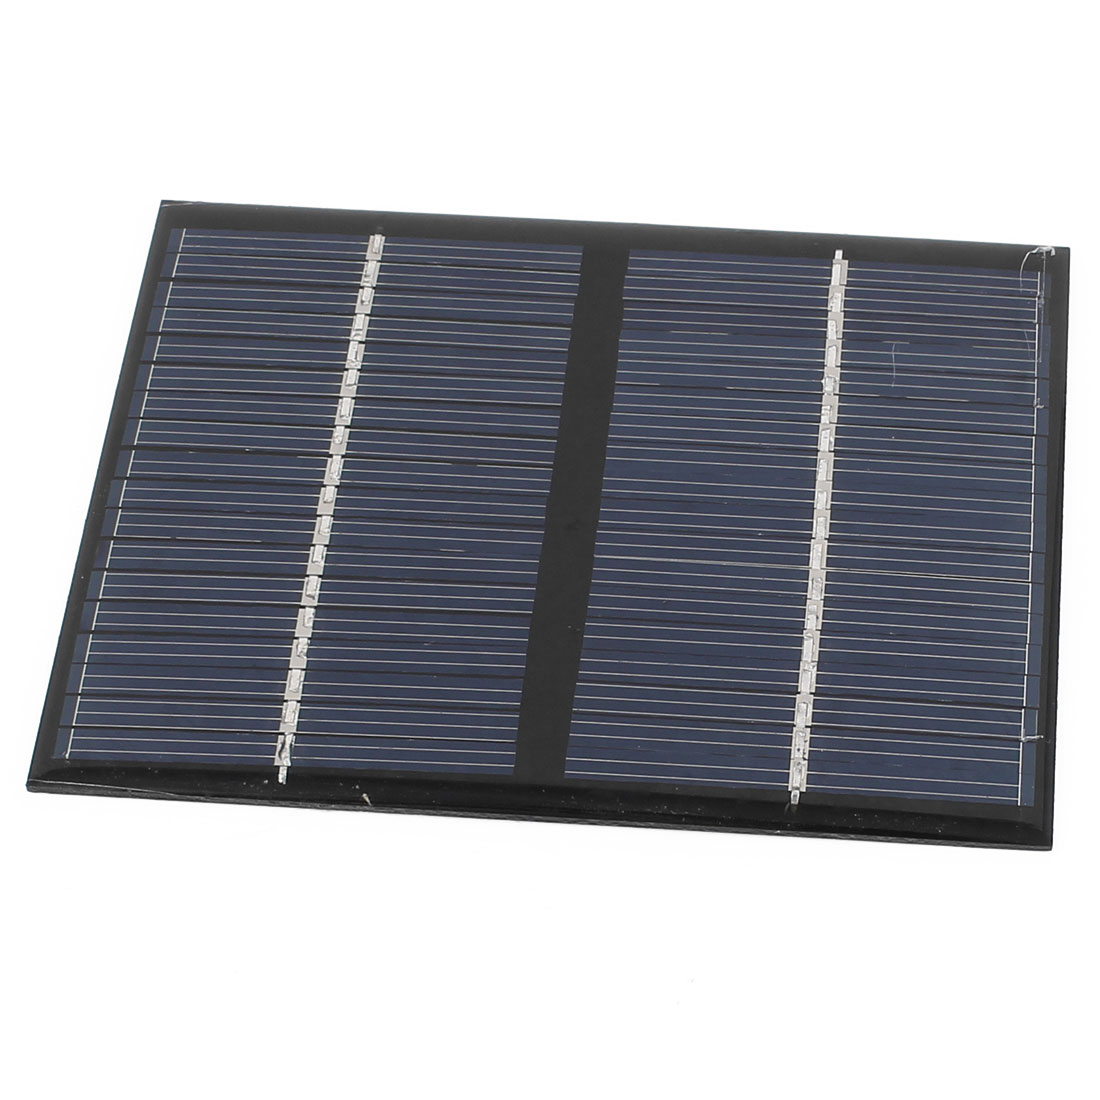 DC 18V 1.5W Rectangle Energy Saving Solar Cell Panel Module for Charger